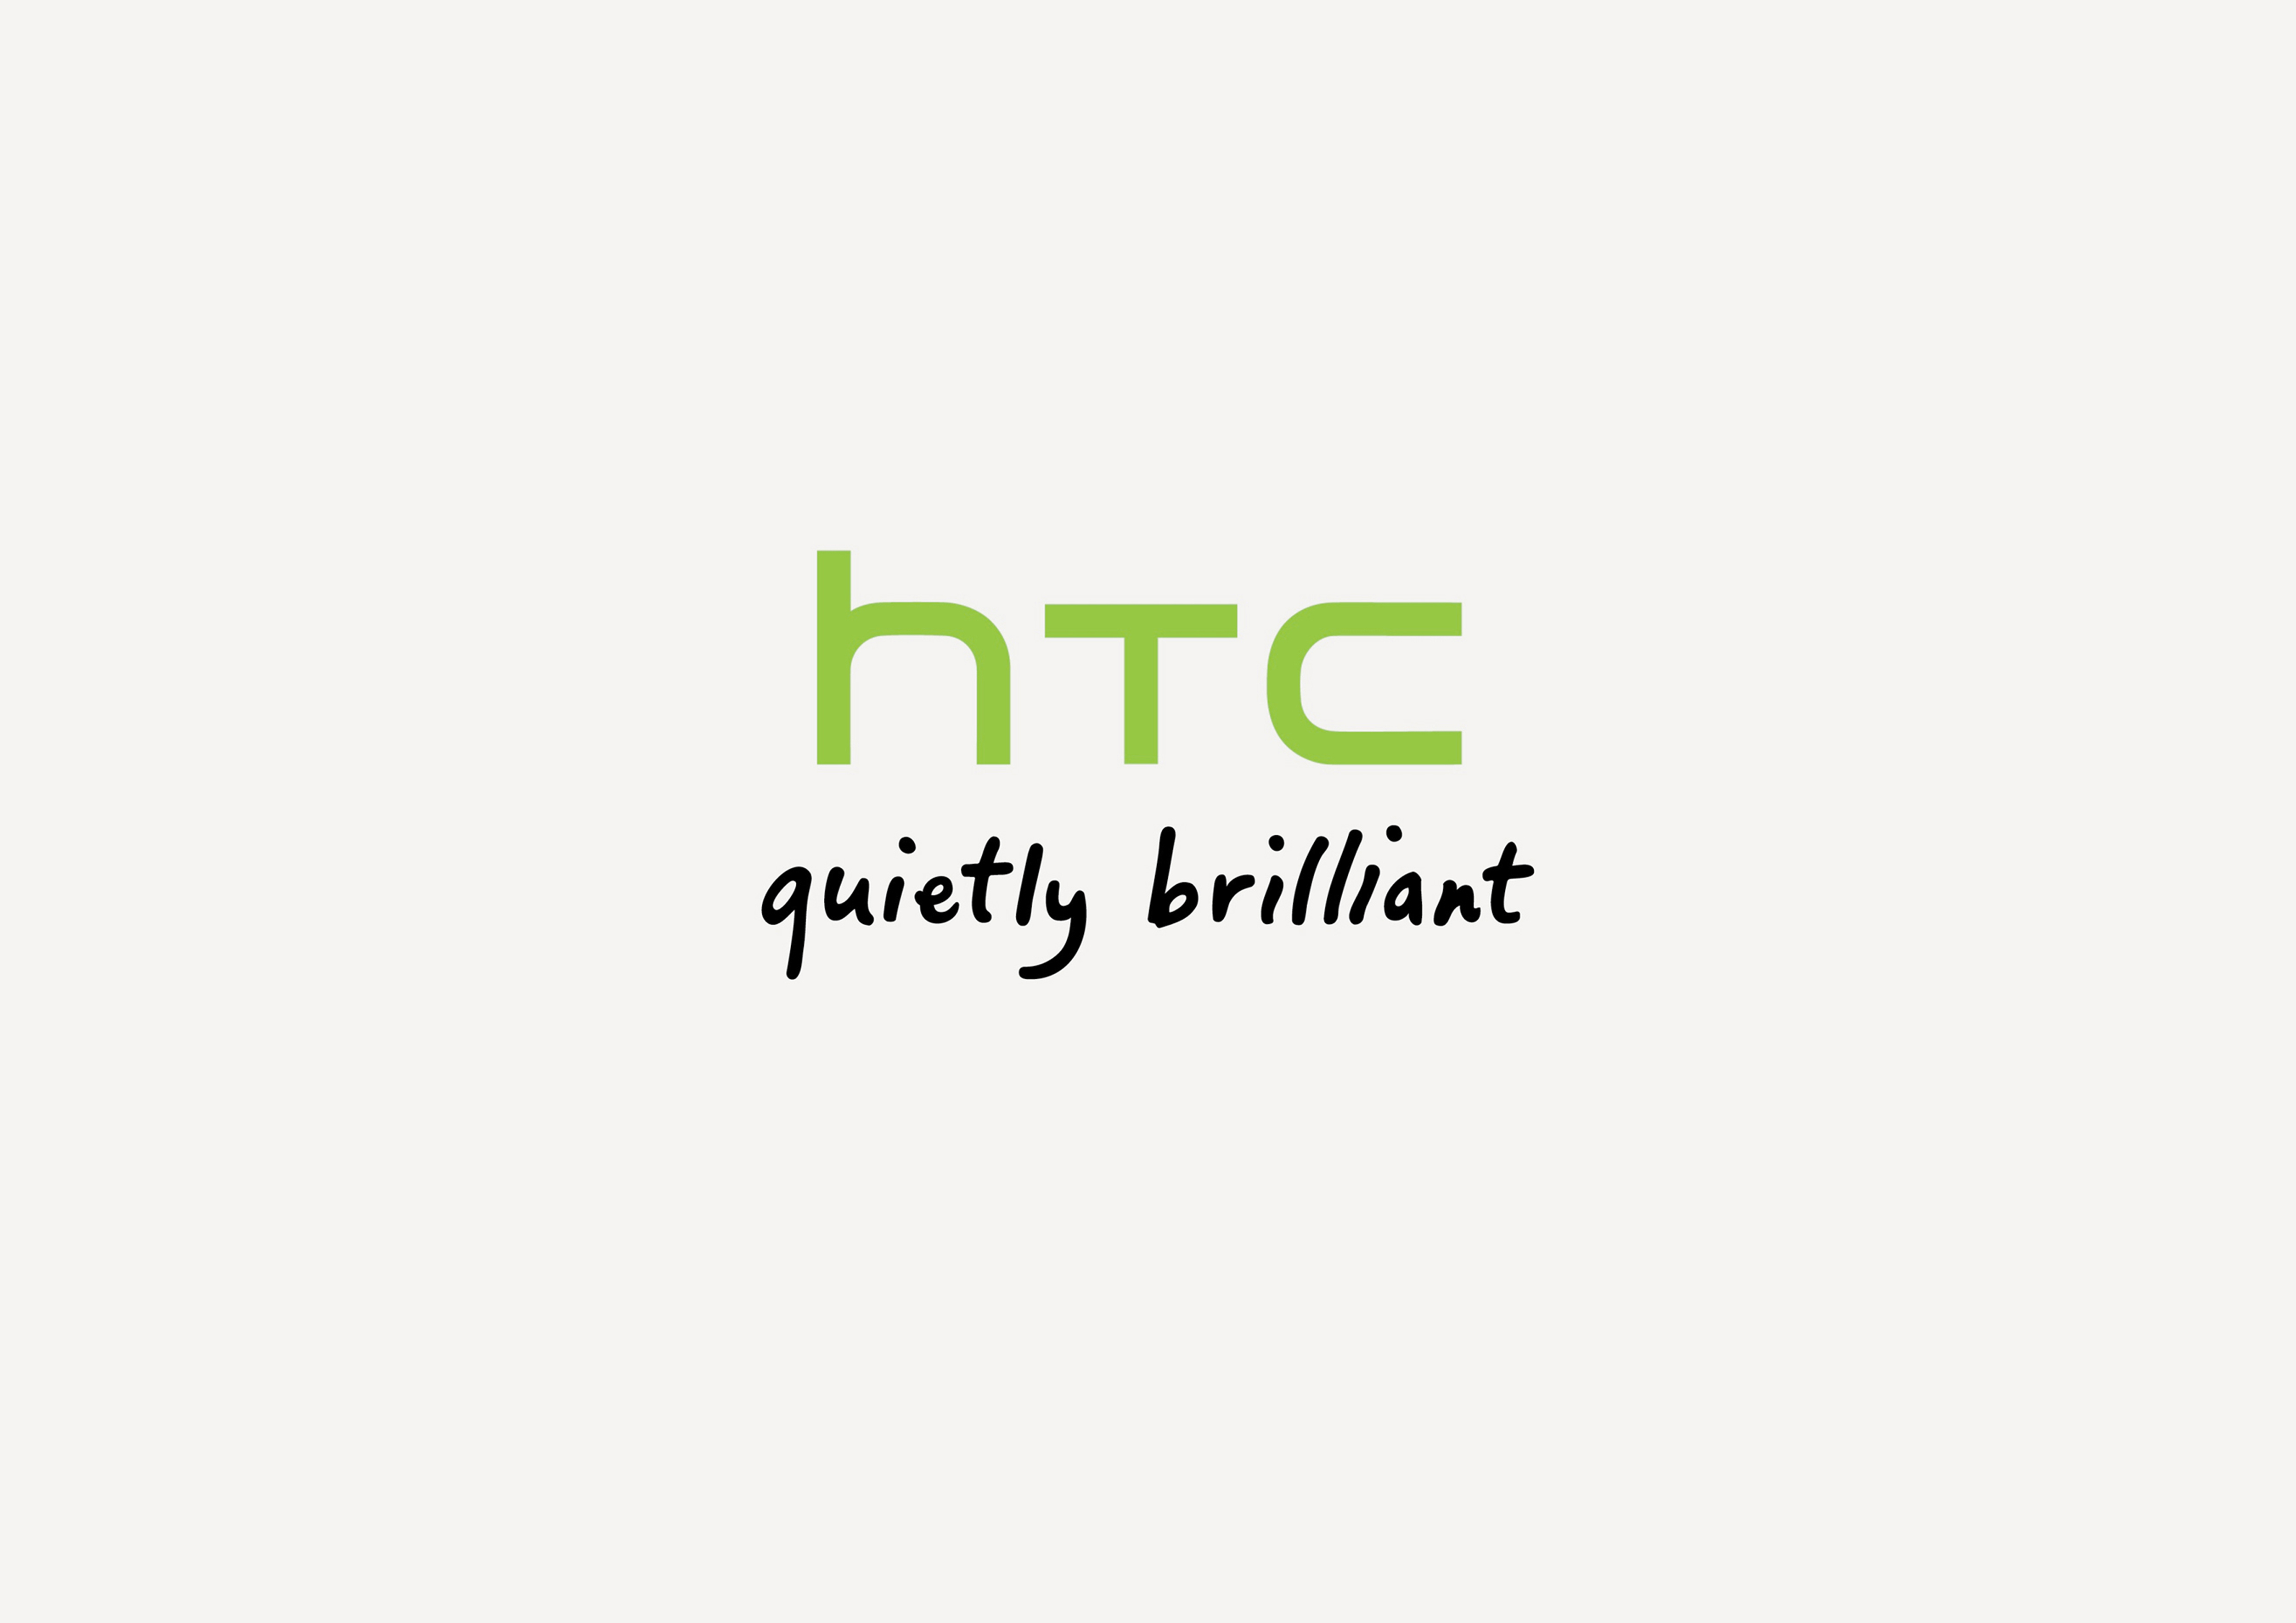 HTC Brand Quietly Brilliant